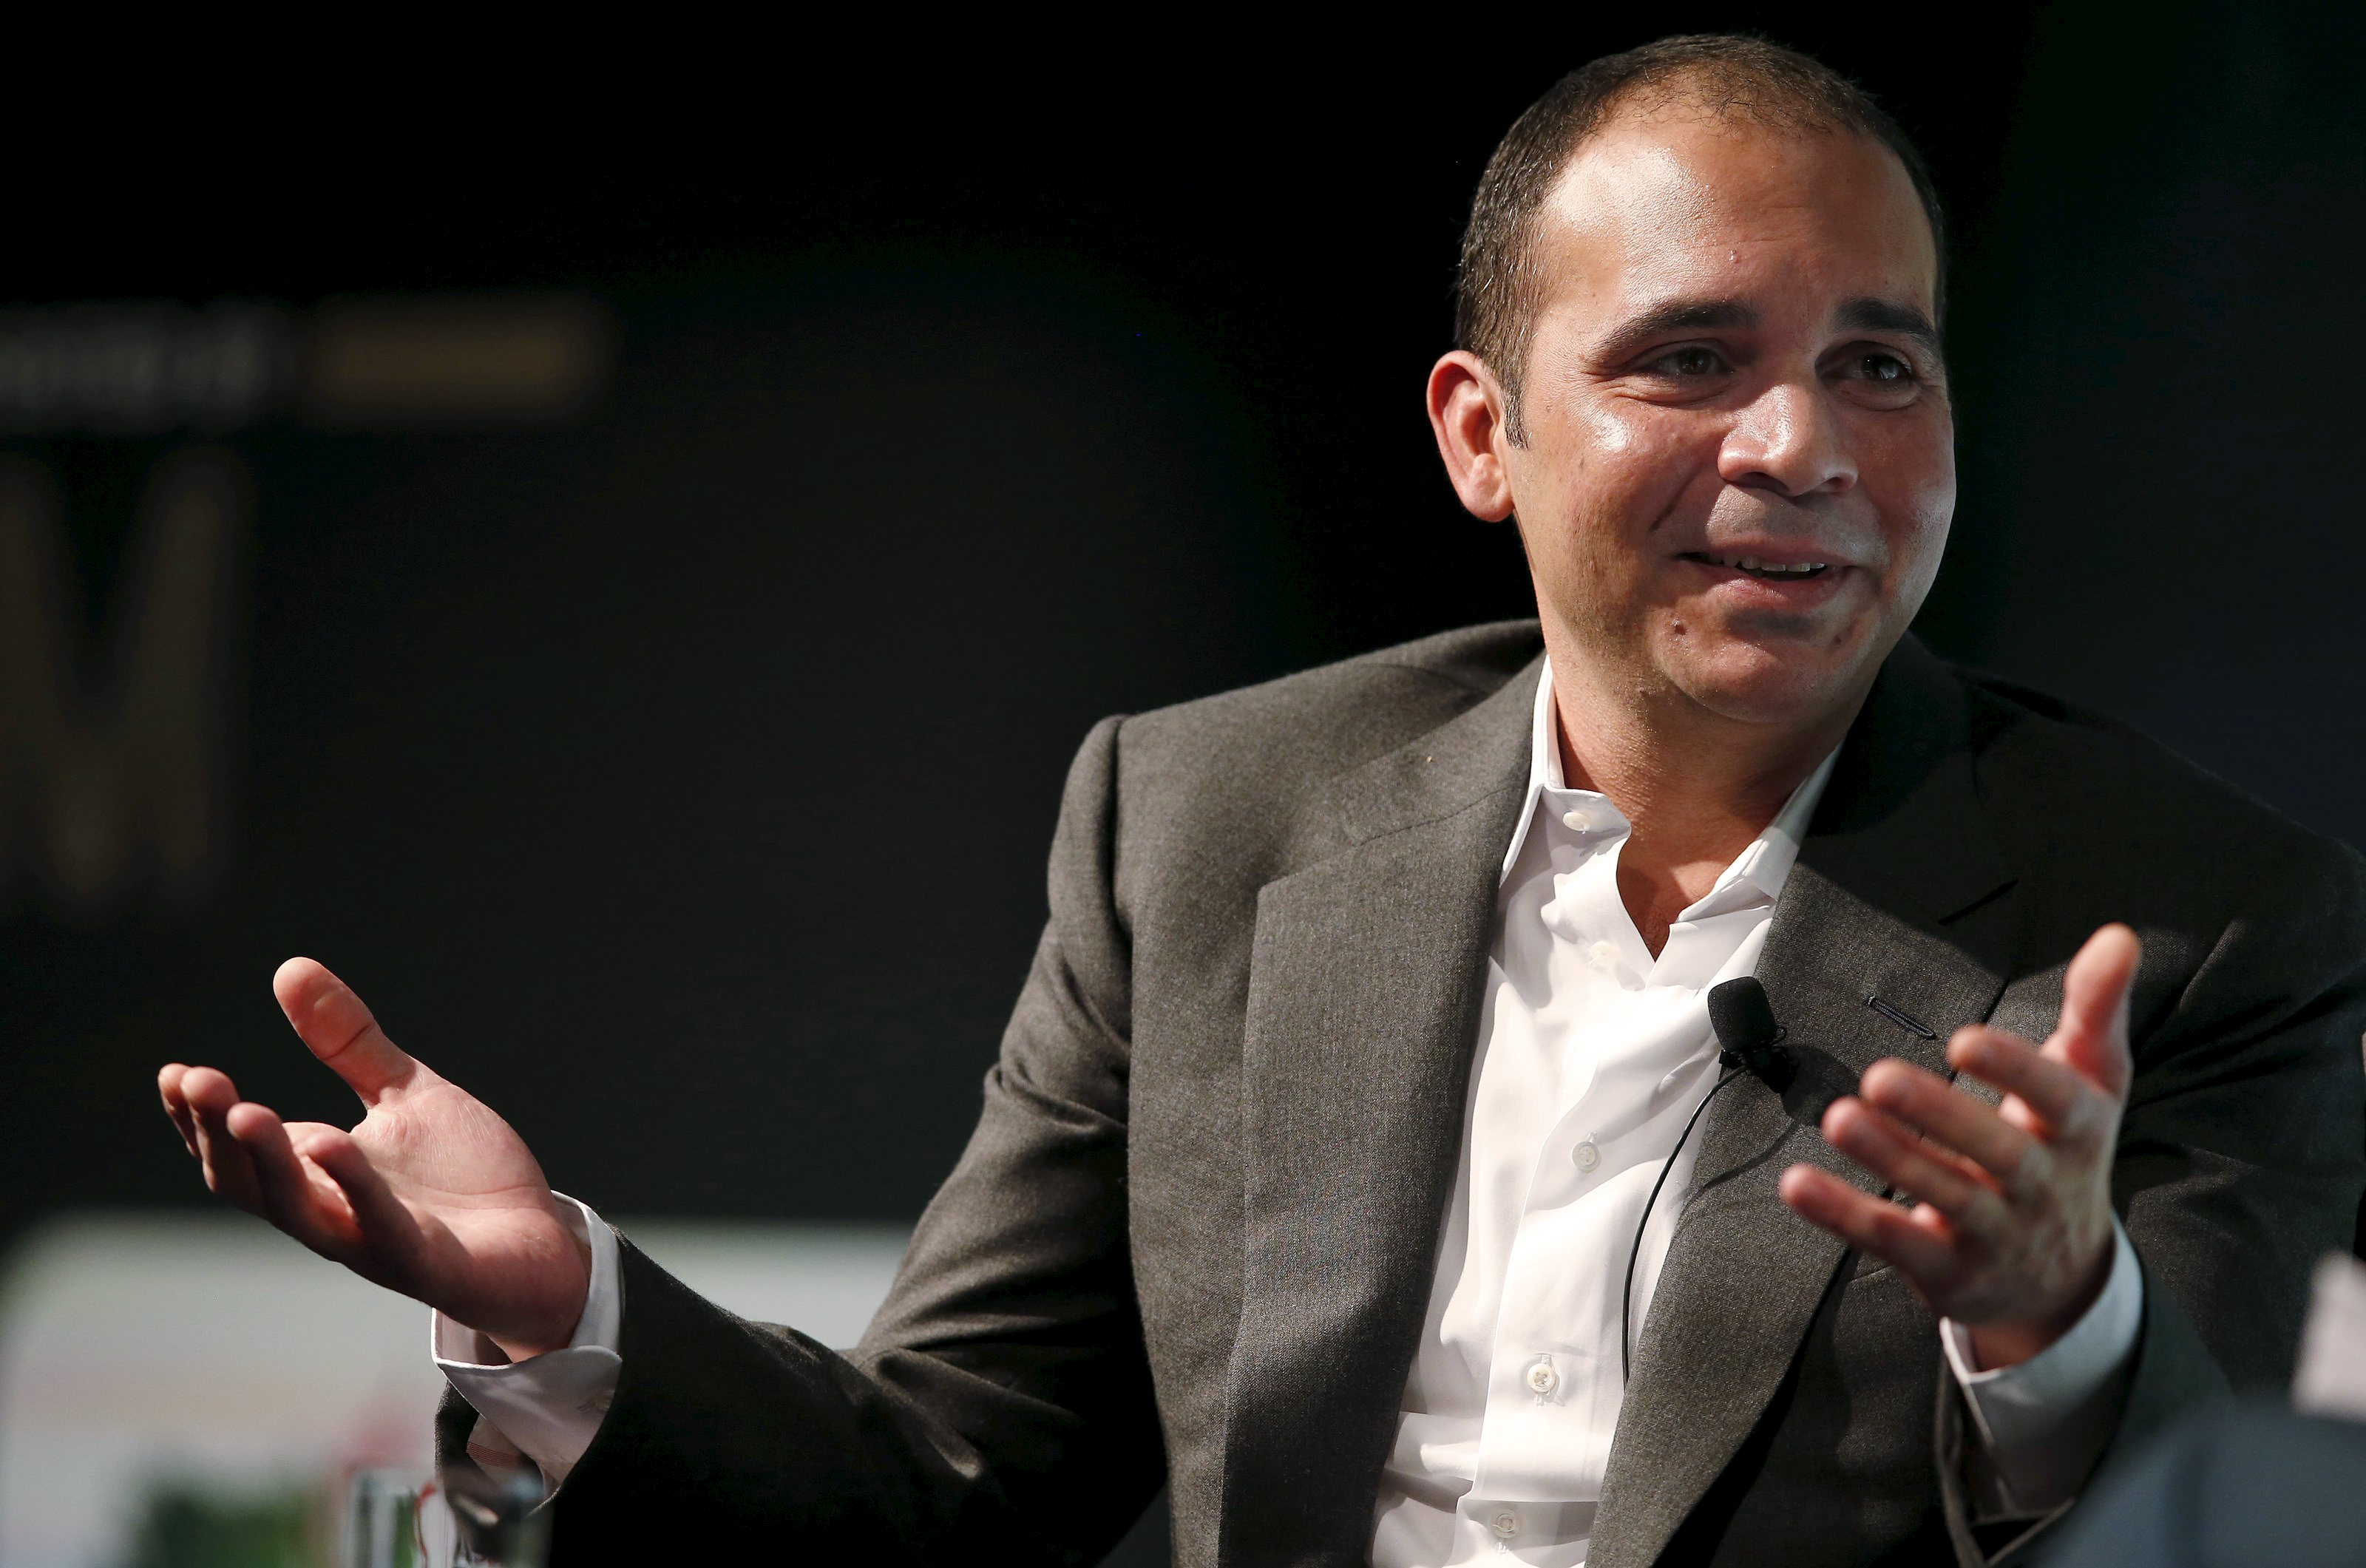 FIFA vice-president Prince Ali Bin Al Hussein of Jordan gestures during a speech on the future of football at the Soccerex convention in Manchester, northern Britain, in this file picture taken September 7, 2015. Prince Ali Bin Al Hussein of Jordan formally submitted his candidature to be FIFA president on October 15, 2015, pledging to restore the reputation of world soccer's scandal-ridden governing body.    REUTERS/Phil Noble/Files